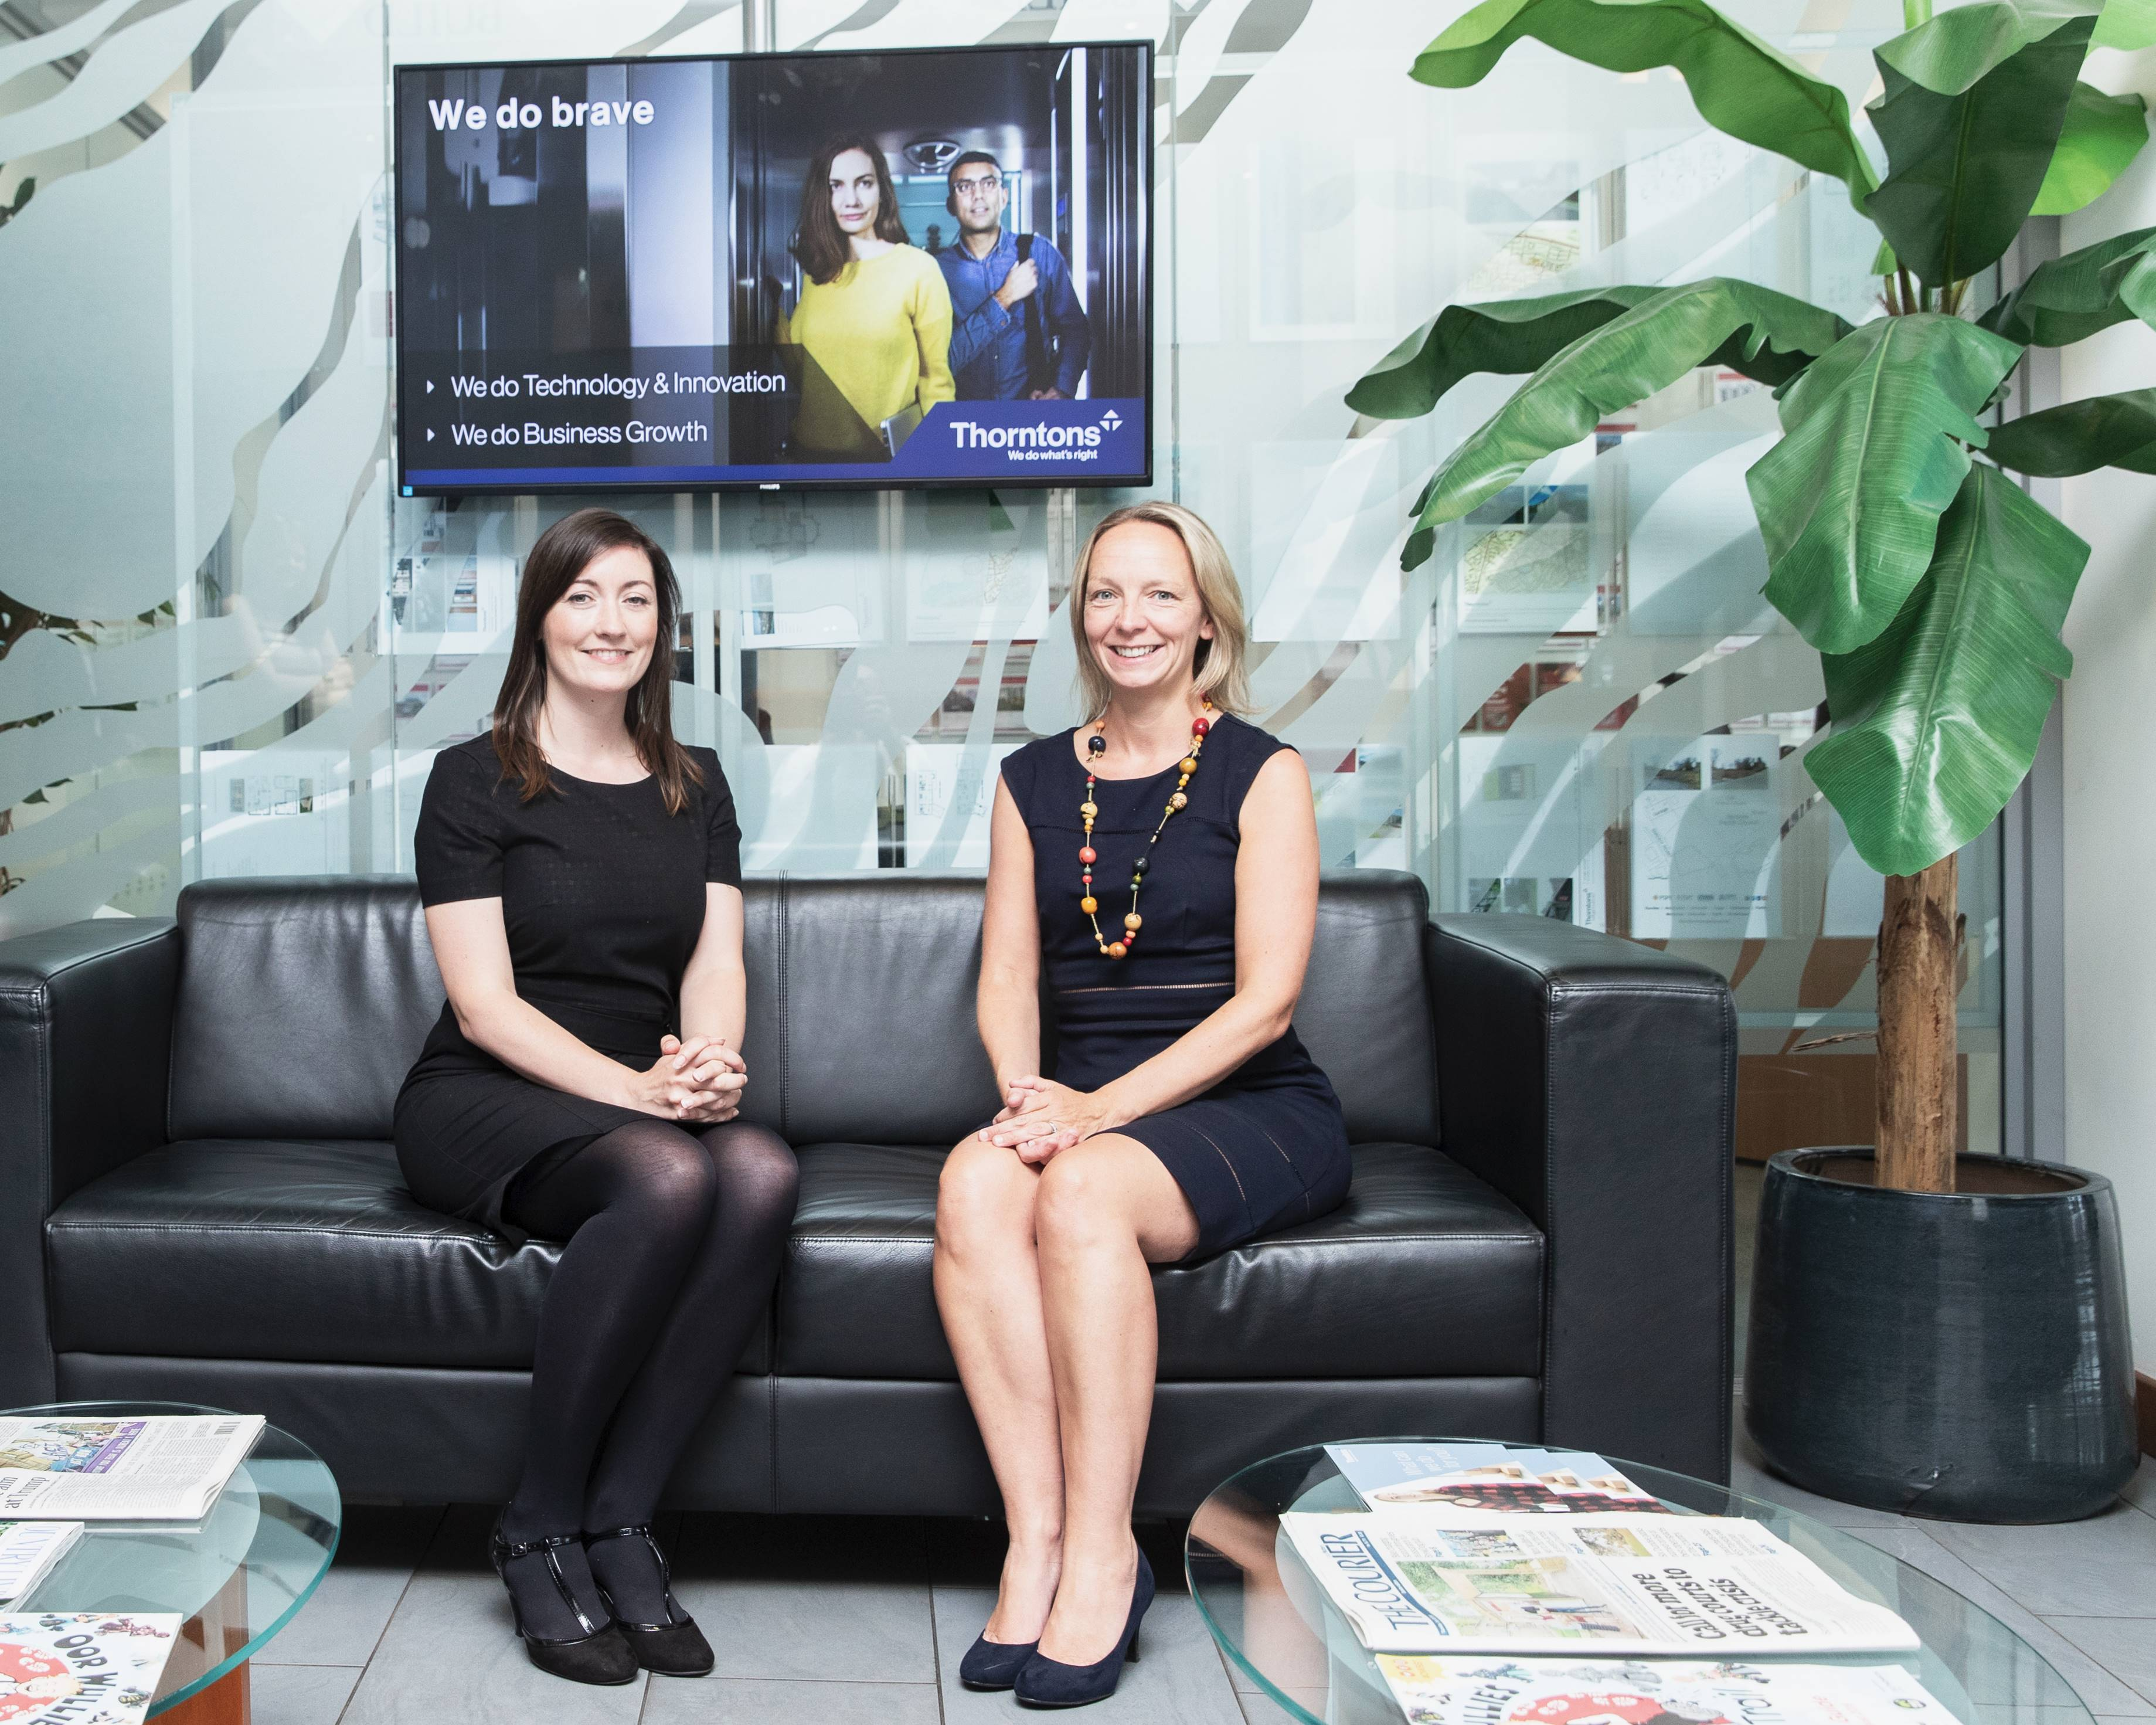 Morgan O'Neill, director of data protection services and Lesley Larg, partner at Thorntons.